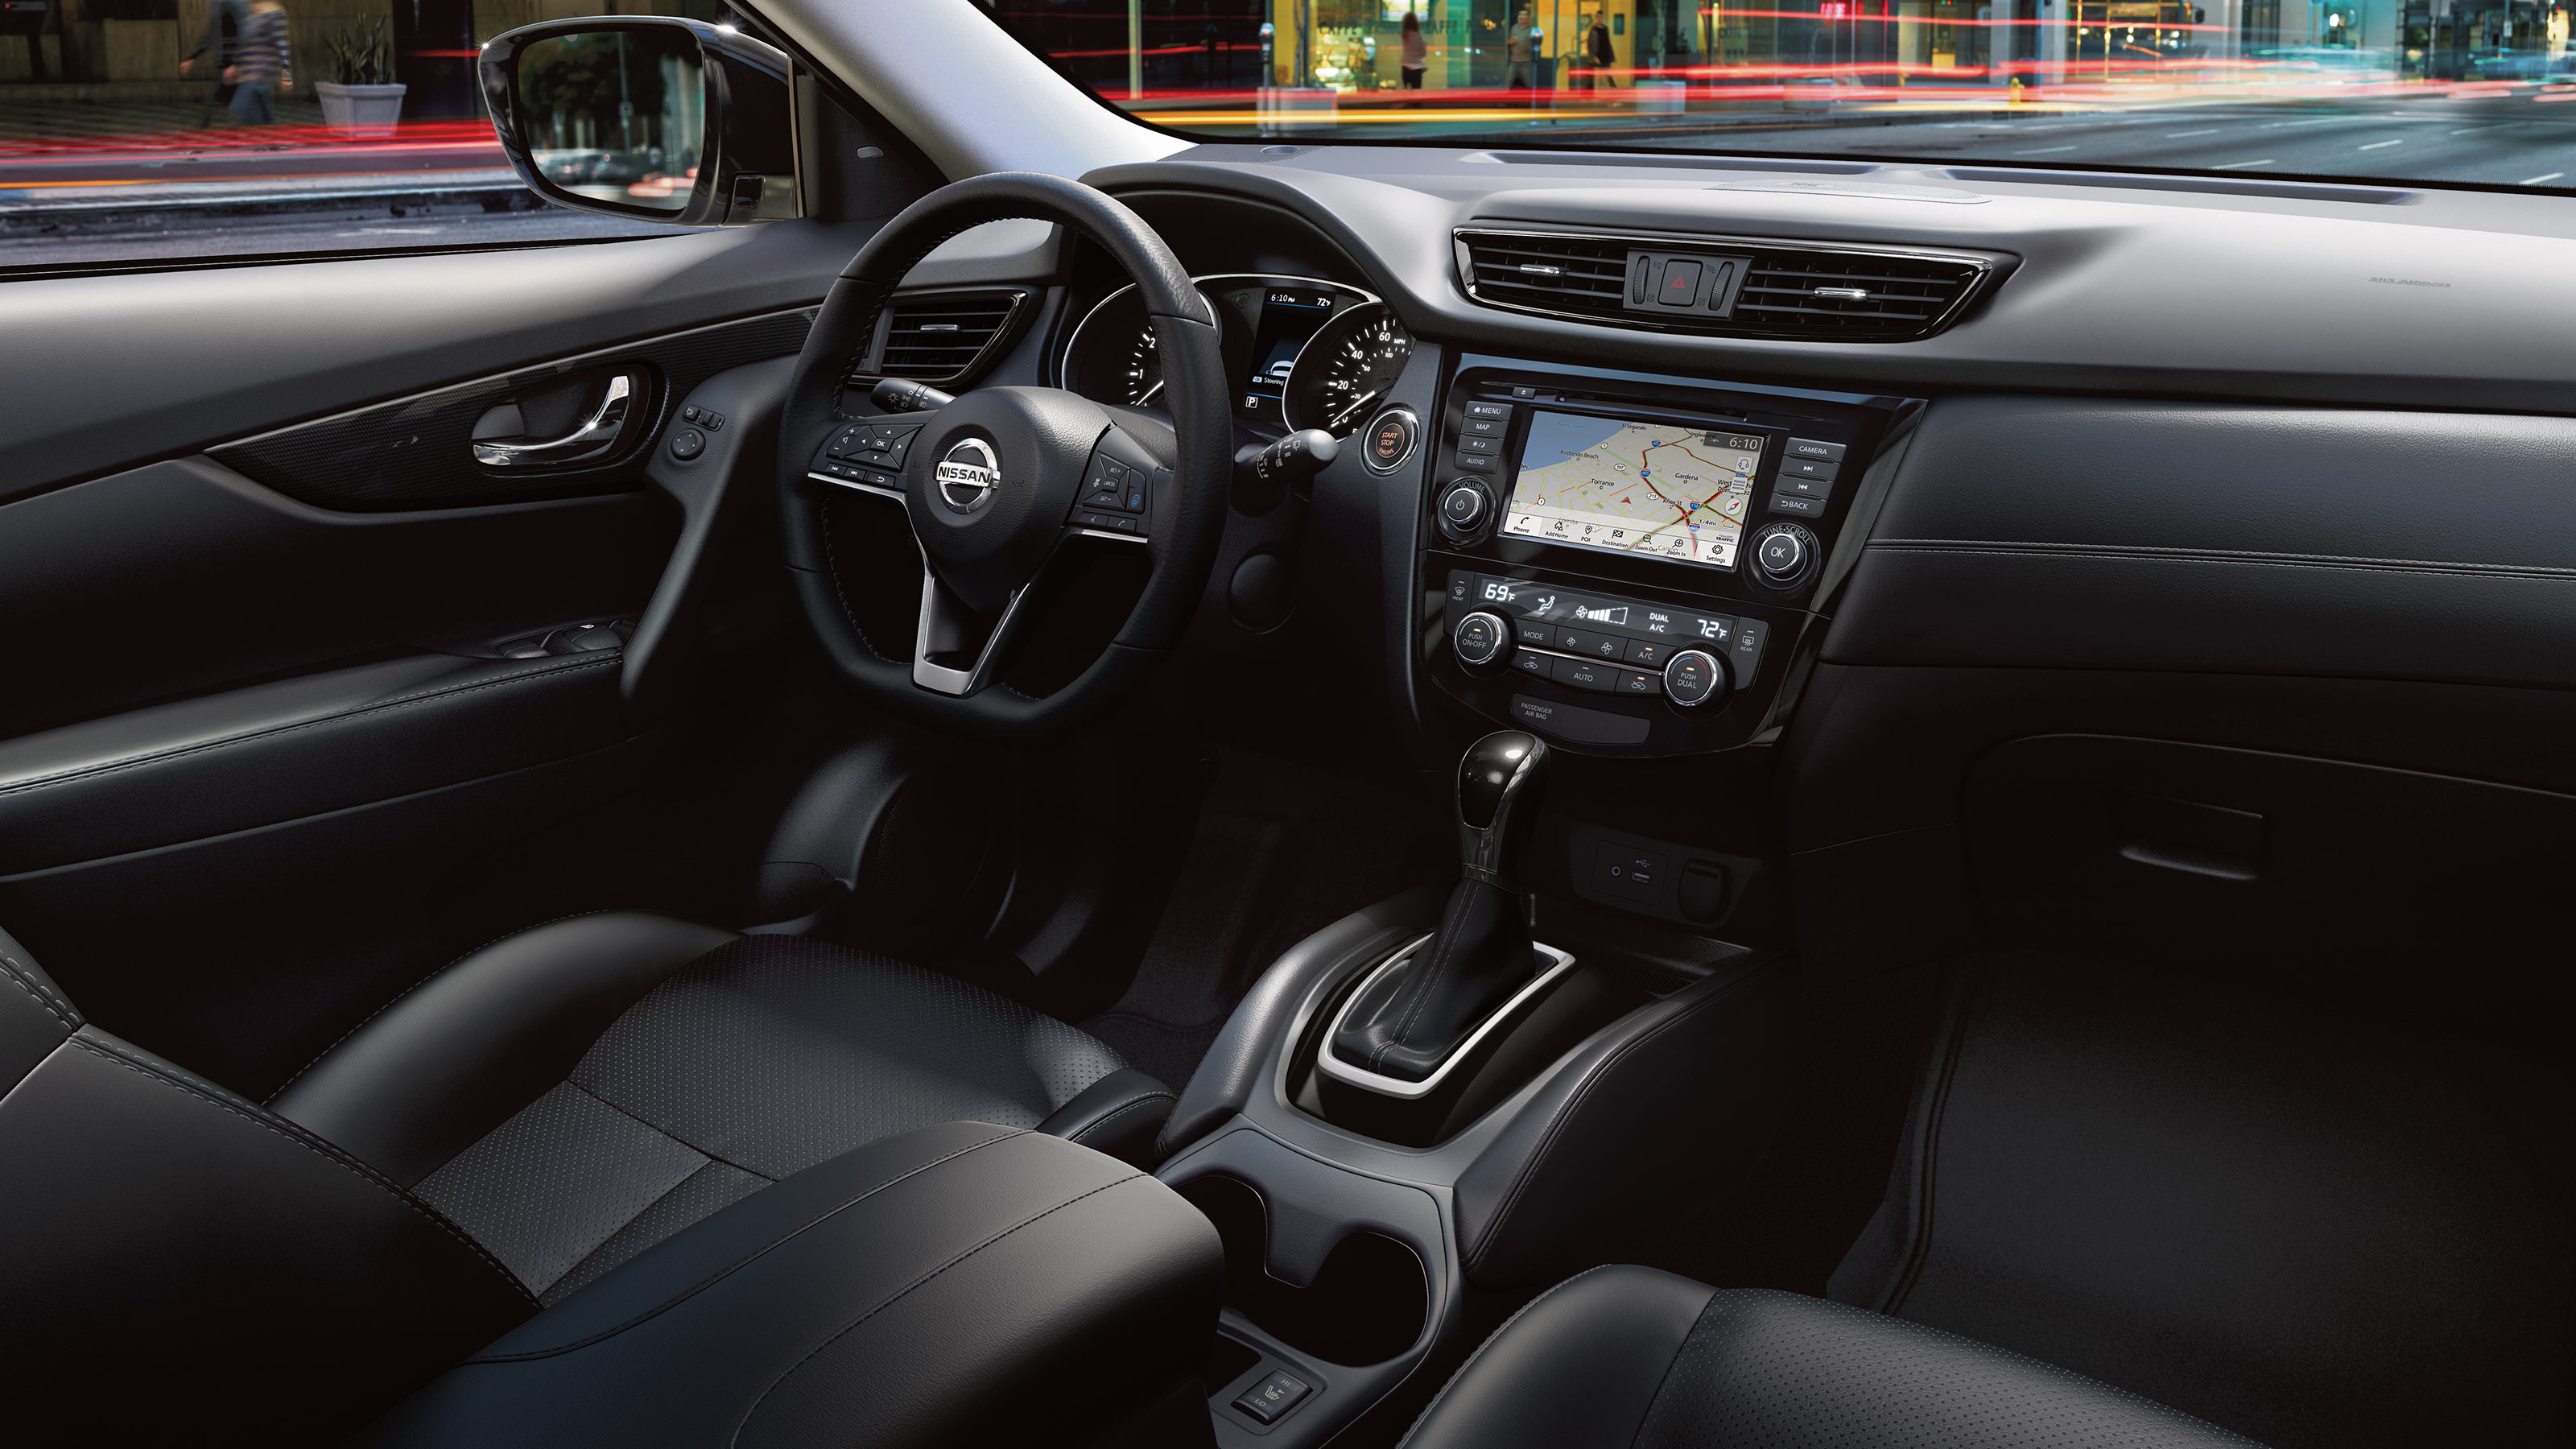 Interior of the 2020 Rogue